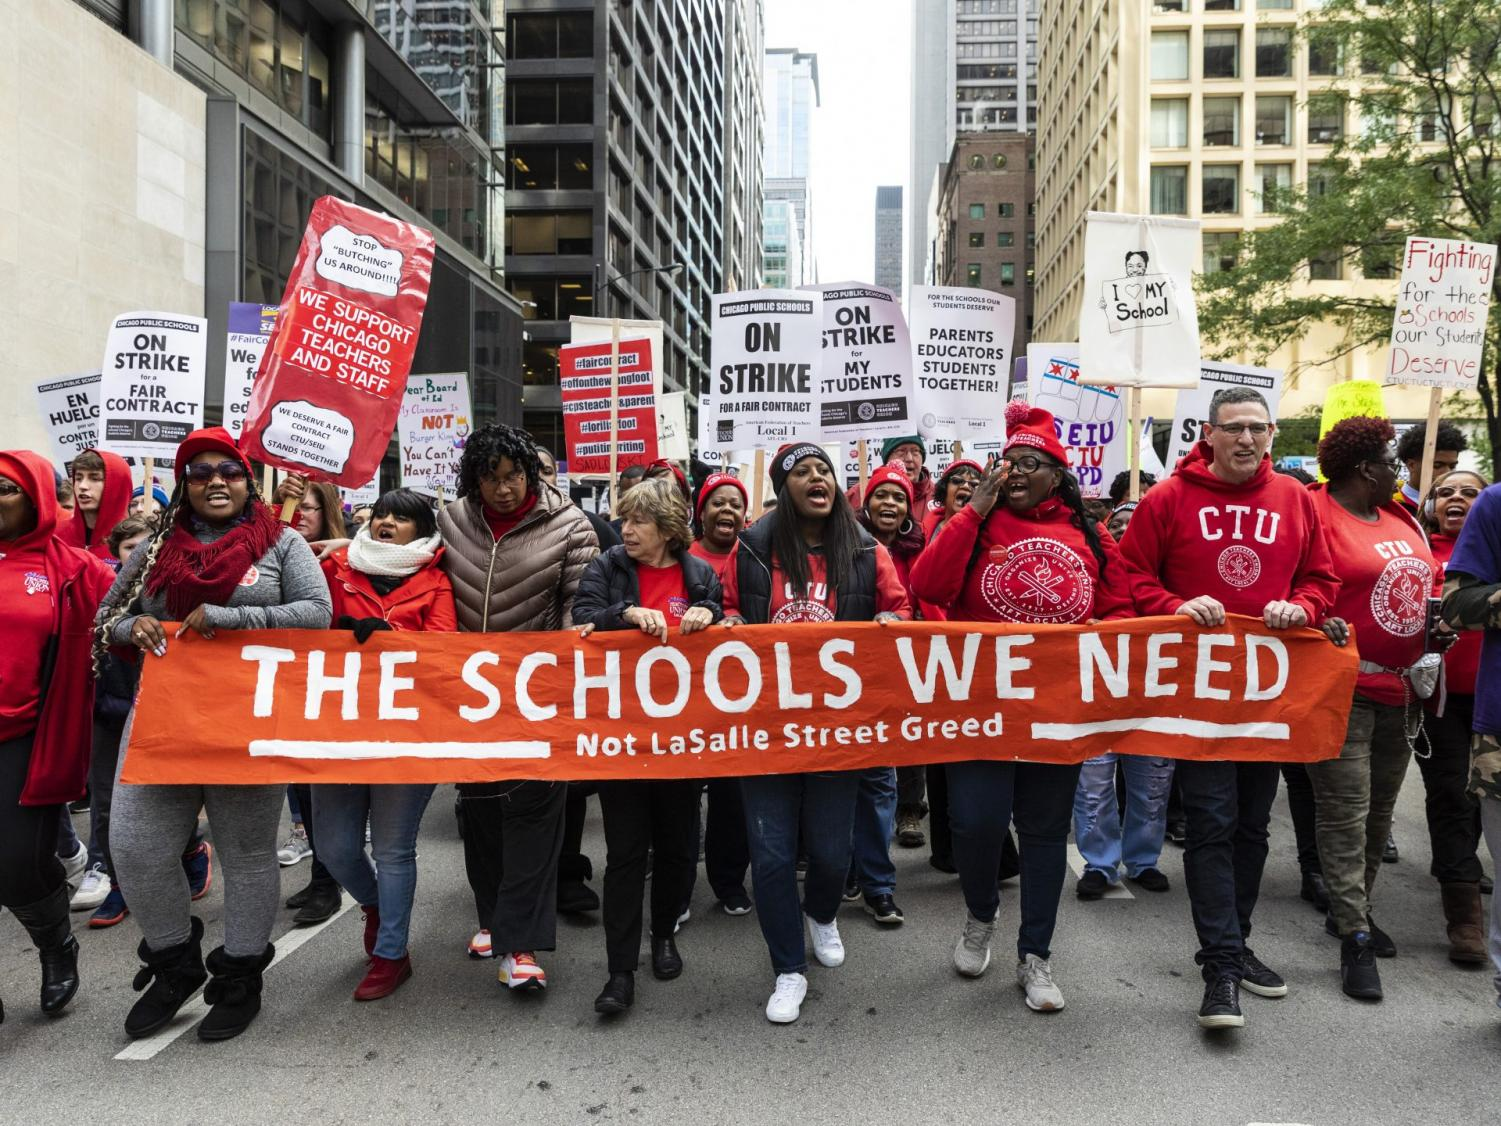 Chicago Teachers Union Vice President Stacy Davis Gates, center, other union officials and their supporters lead thousands of striking union members on a march through the Loop, Thursday, Oct. 17, 2019, in Chicago. Striking teachers went on strike after their union and city officials failed to reach a contract deal in the nation's third-largest school district.